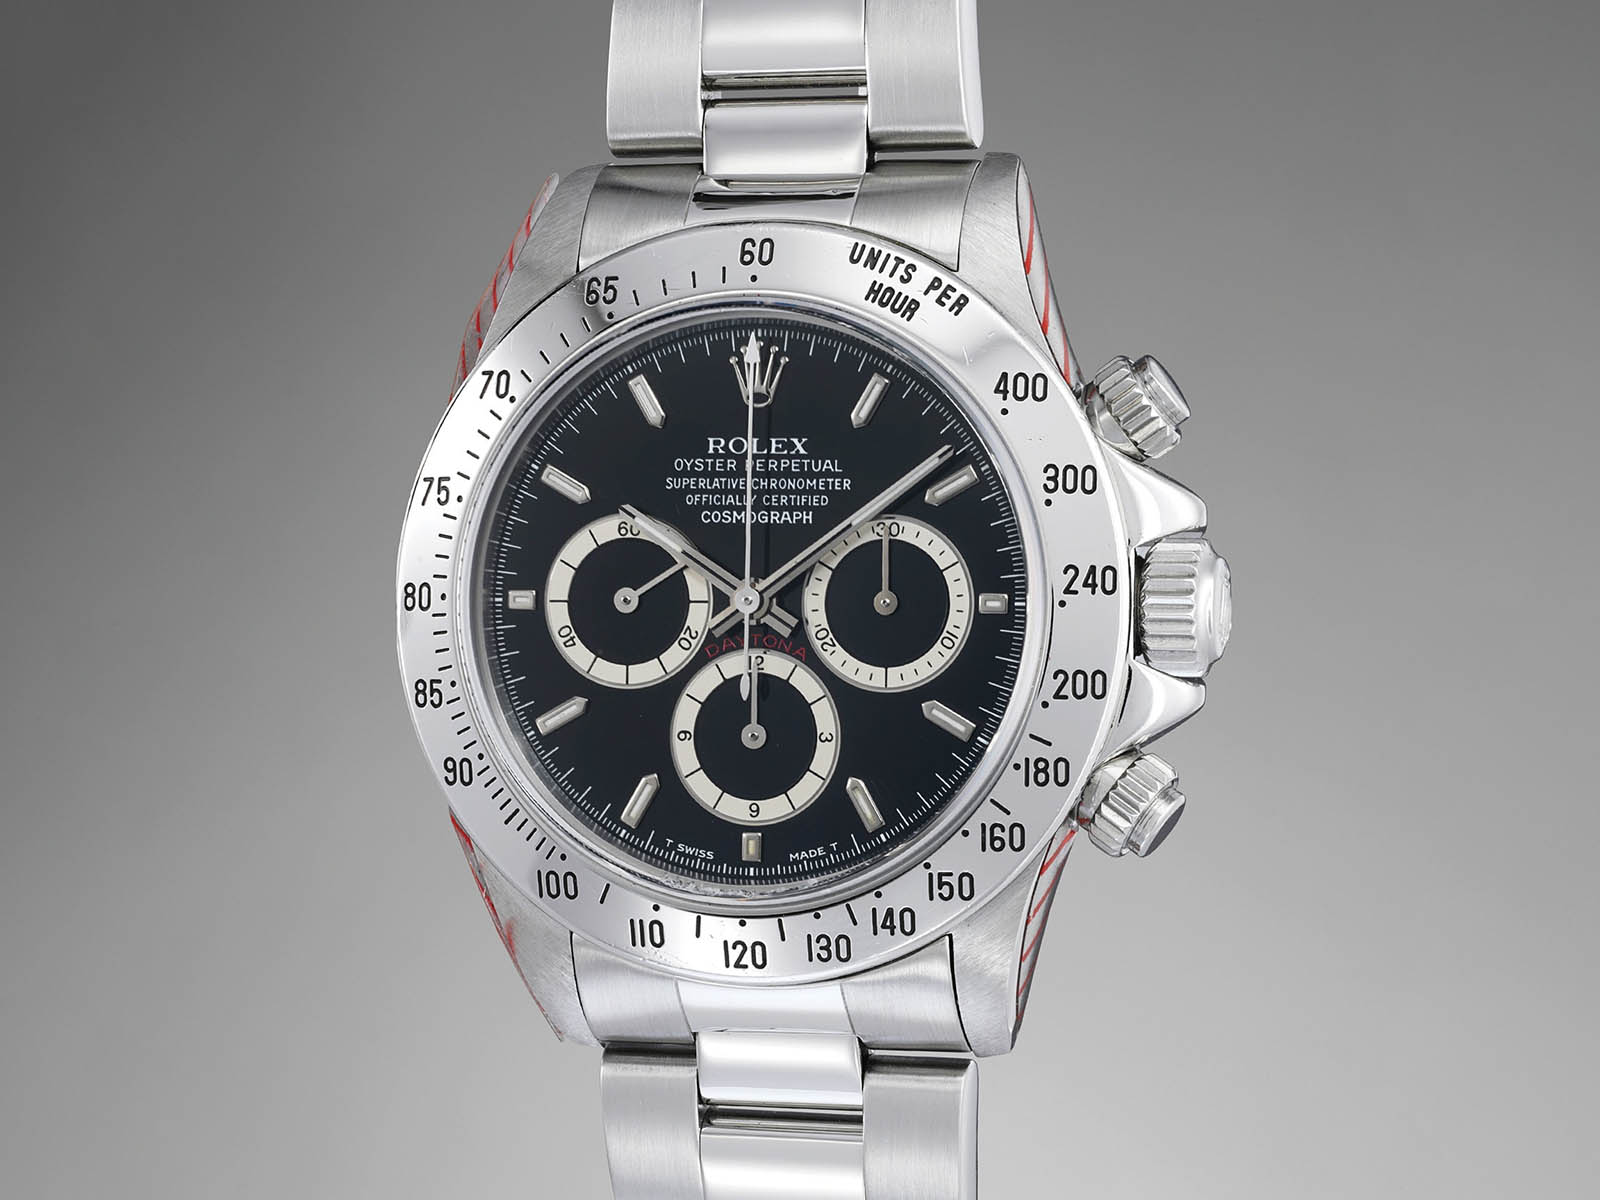 16520-rolex-daytona-inverted-6-white-dial.jpg